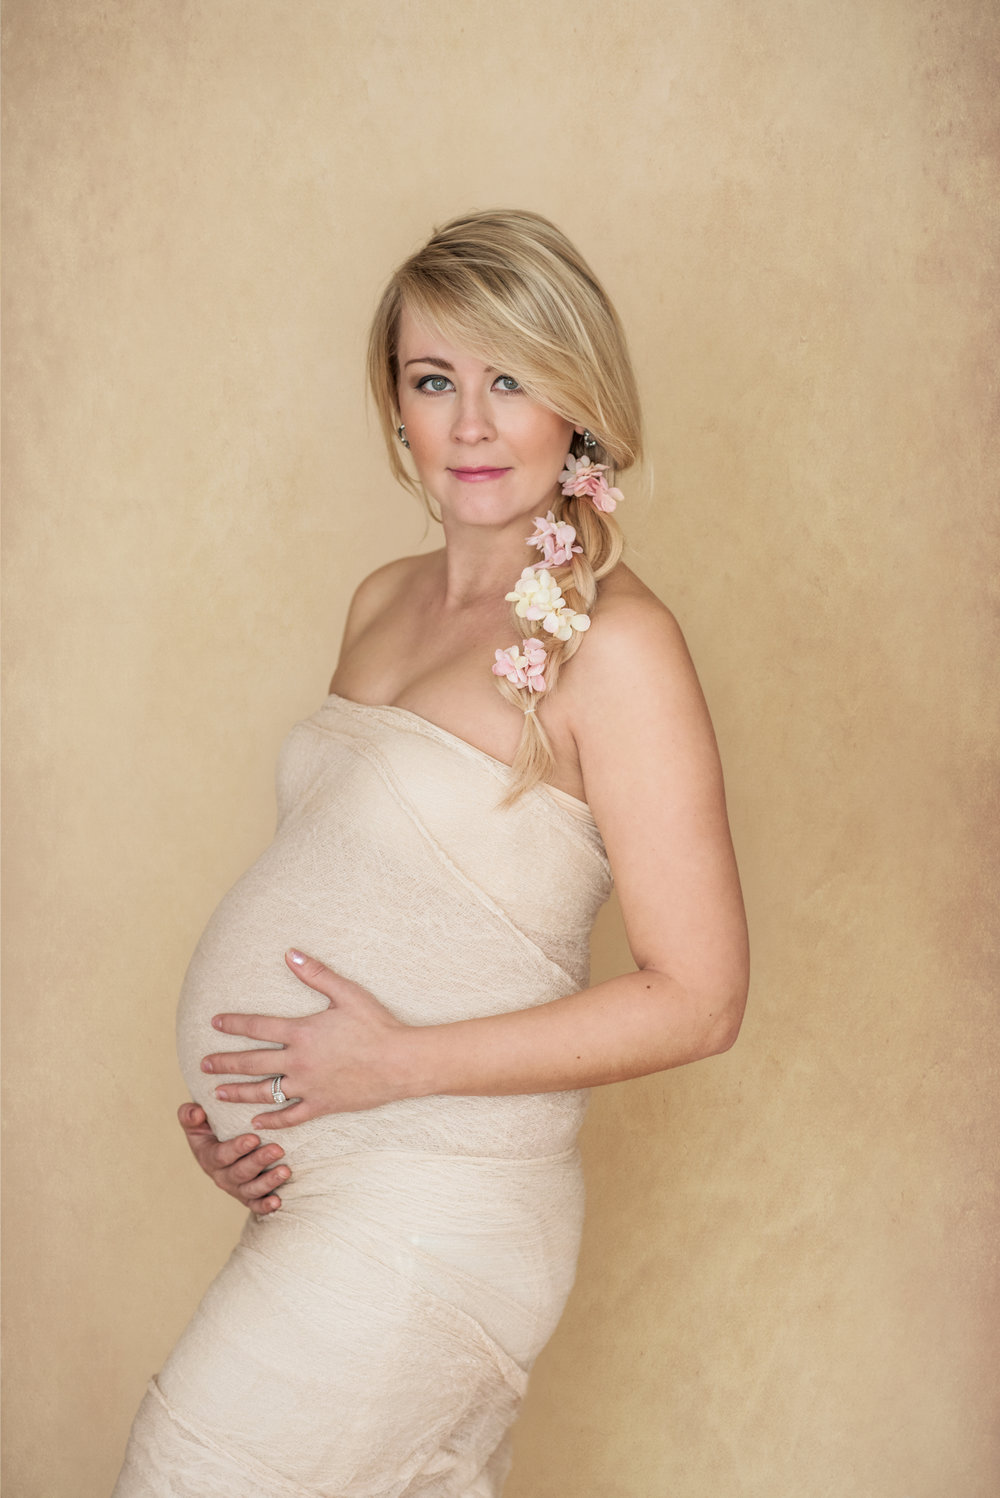 calgary womens beauty glamour maternity professional portrait photographer yyc mortensen photography